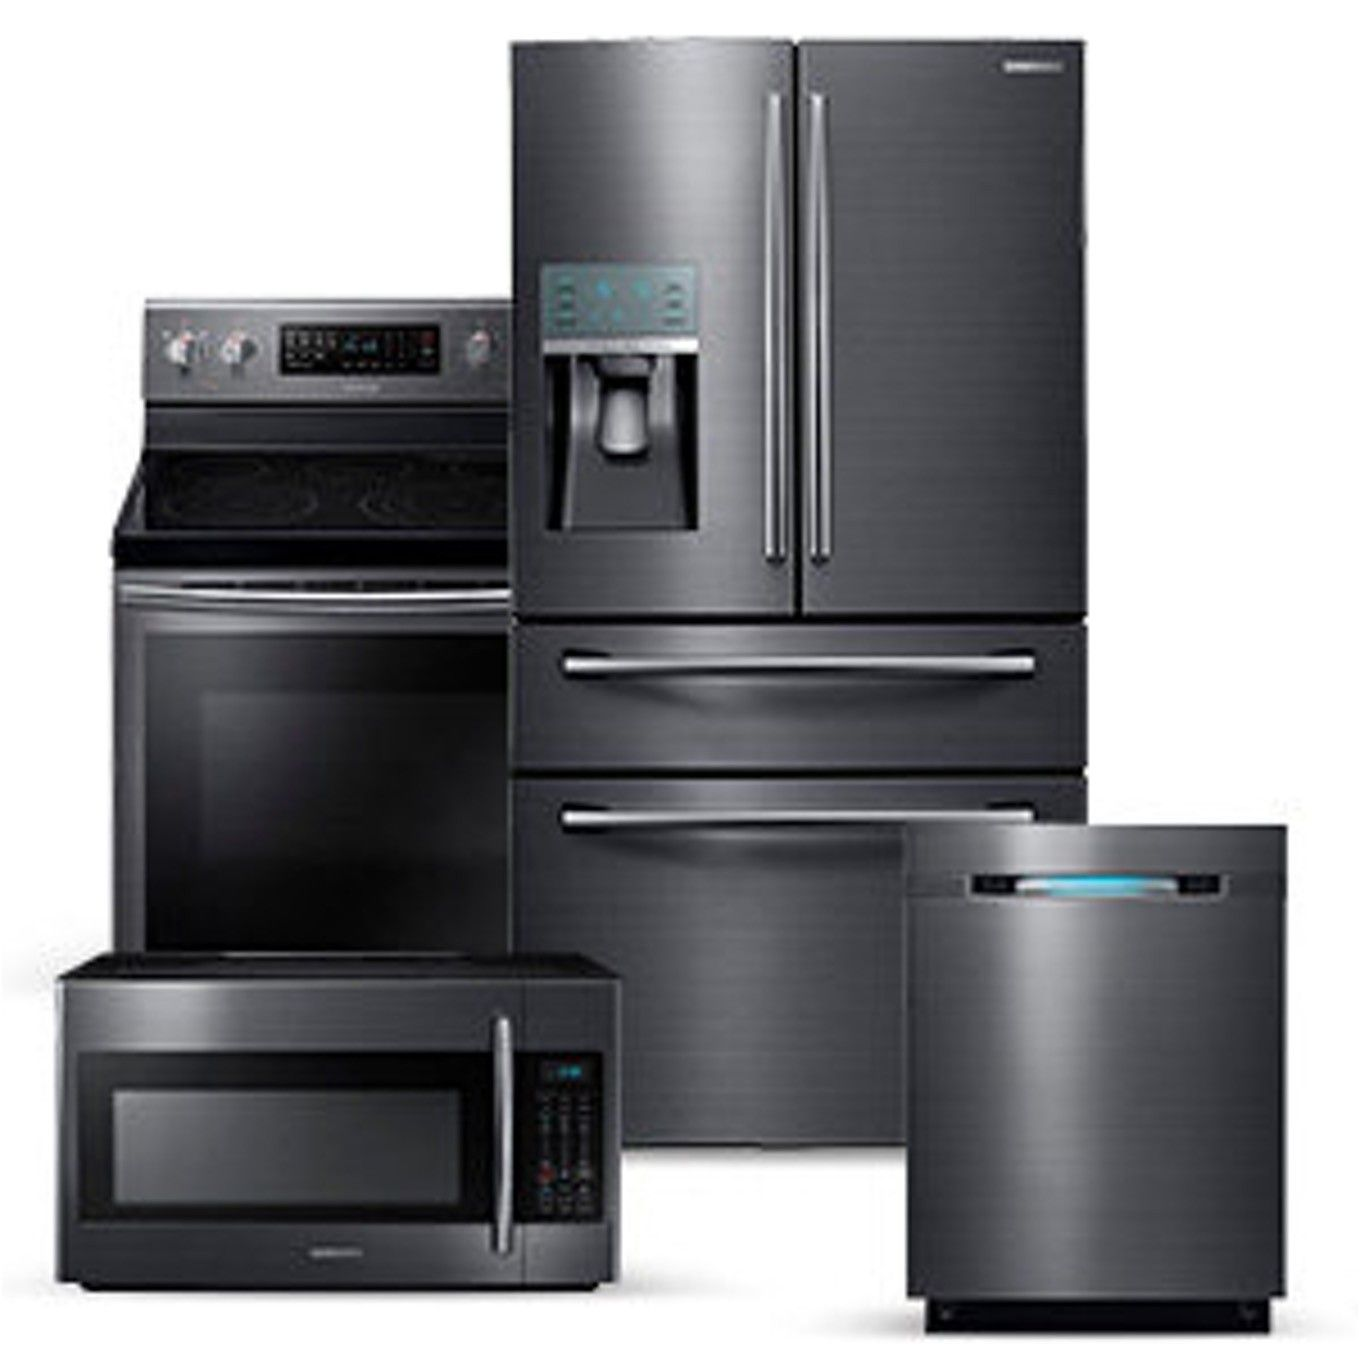 Kitchen Appliances Packages Hhgregg Appliance Packages Home Depot From Home  Depot Kitchen Appliances Package Deals